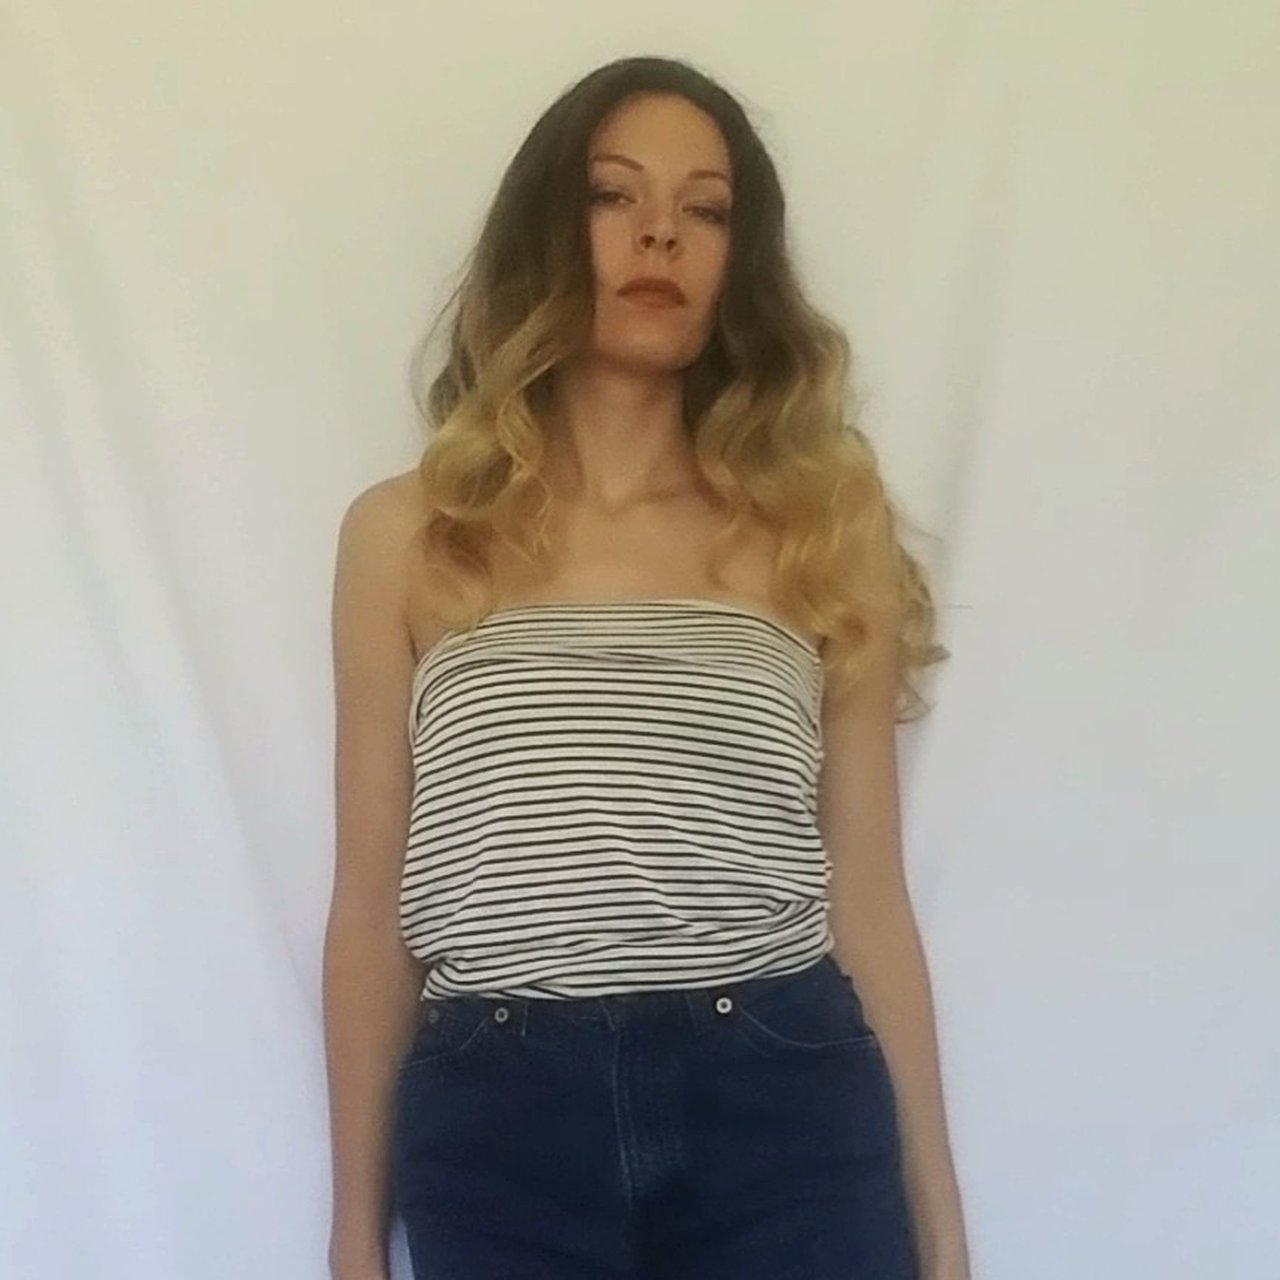 23883f39db7 Basic & versatile striped tube top. White with black pin can - Depop